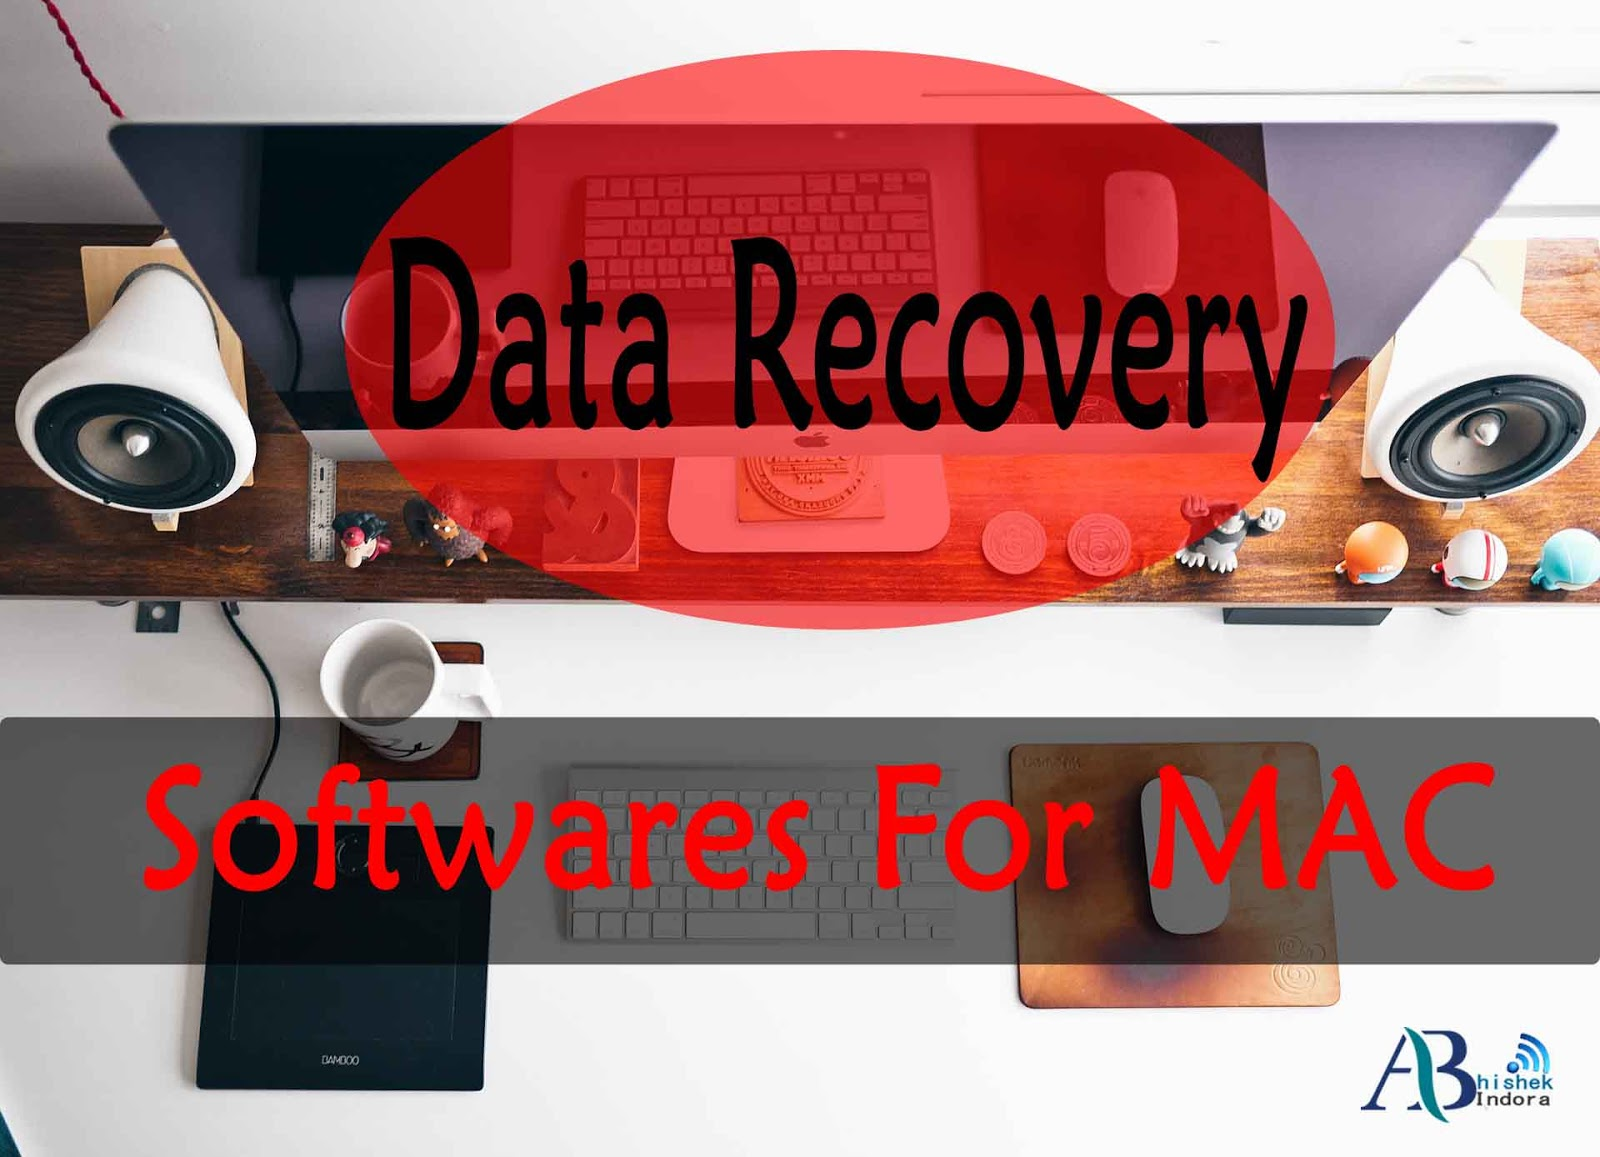 Best Data Recovery Software For Mac,best data recovery software,data recovery,mac data recovery,free data recovery software,data recovery software for pc,data recovery software mac,best data recovery software mac,best recovery software,data recovery software free,best file recovery software,best free data recovery software,data recovery for mac